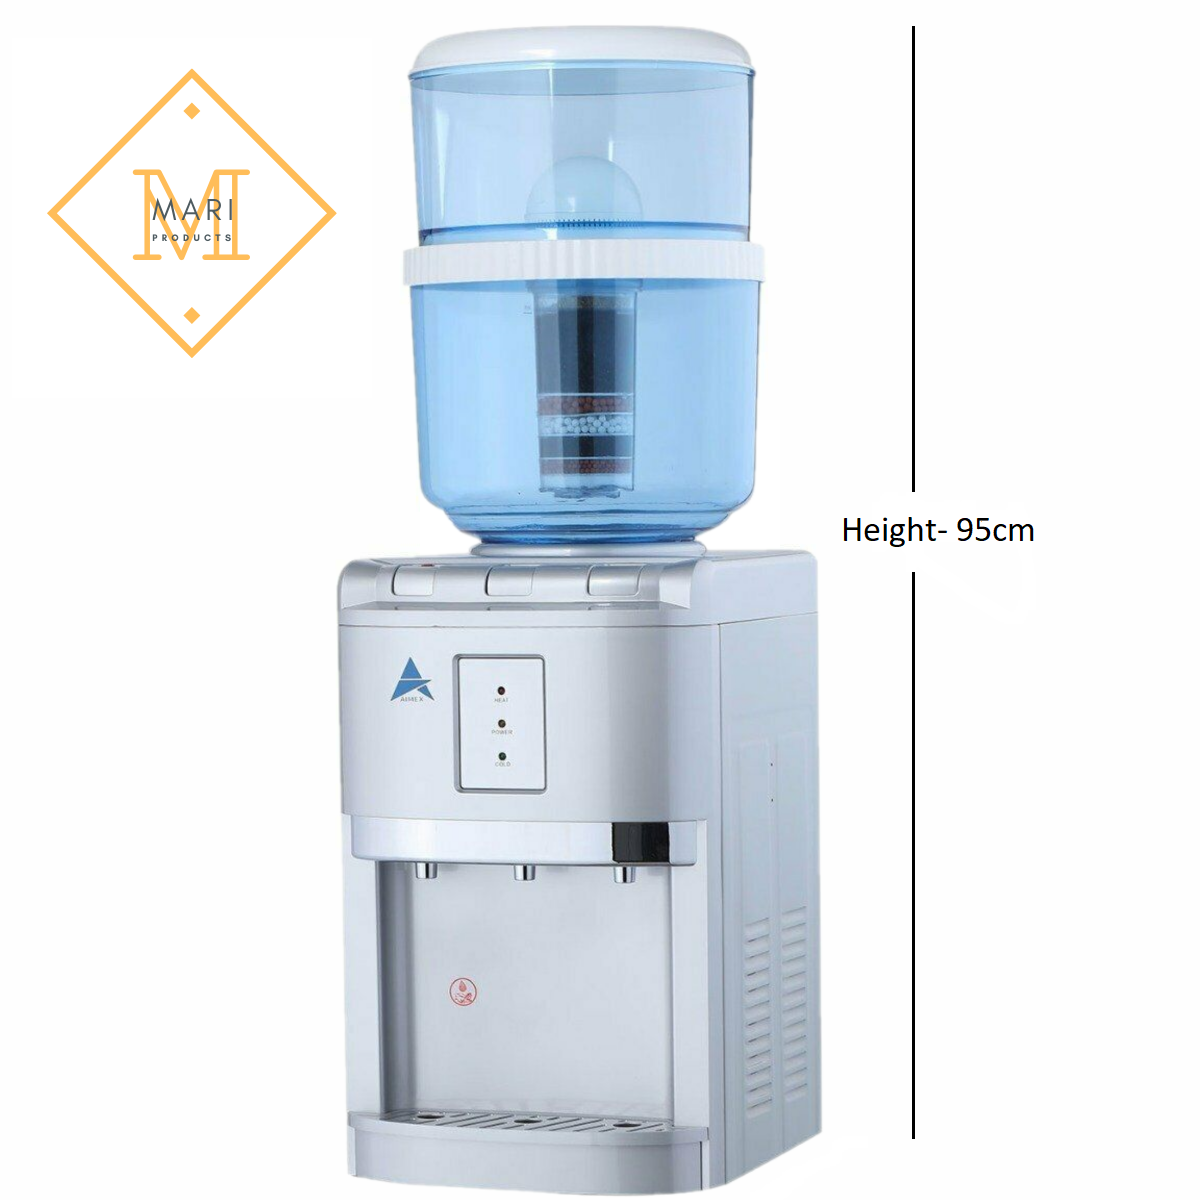 Benchtop Water Coolers Hot Cold Water Dispenser 20l Water Filter Tank And Filter Water Coolers Water Dispenser Refillable Water Bottles